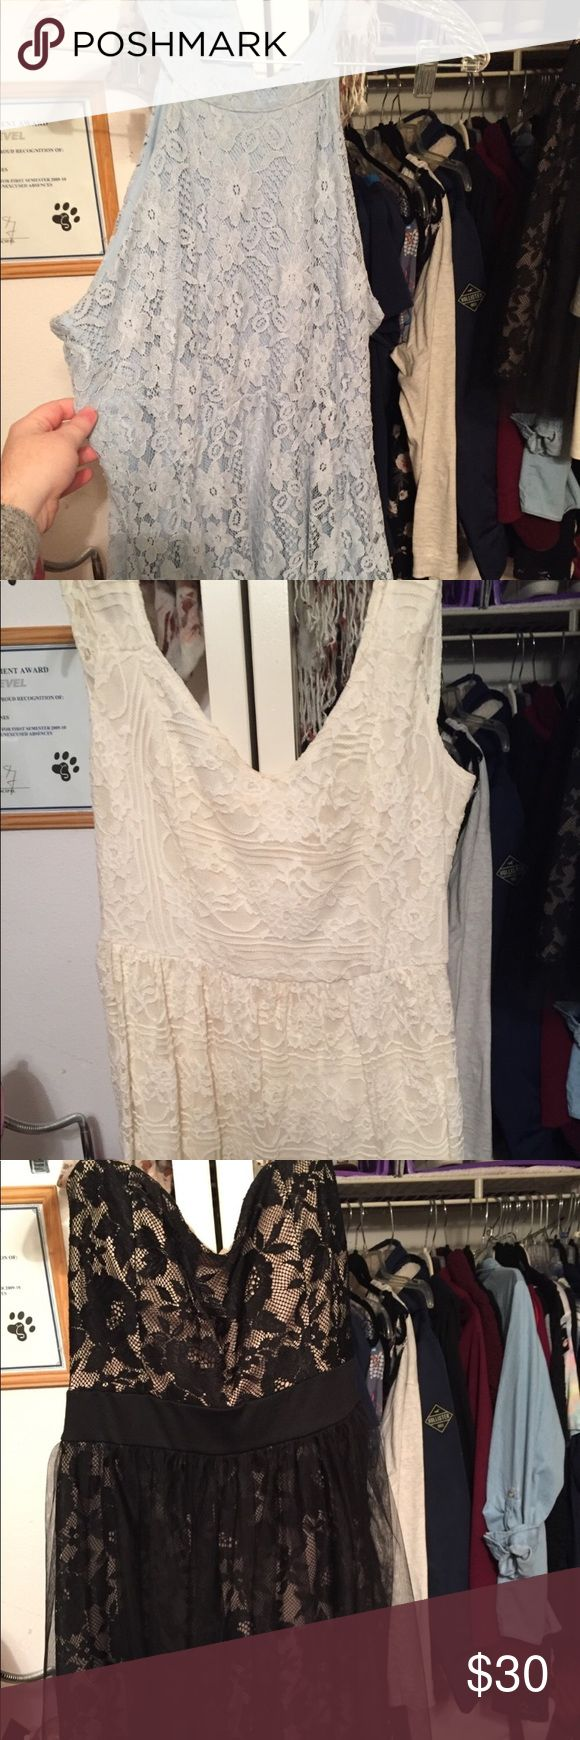 Bundles of dresses from rue21 and Charlotte ruse Have 3 different dresses for a bundle, great deal for New Years! They are all great condition and no stains or rips. They are all size large. If you have any info about them let me know! I also have more pictures of them in my profile that I sell. Charlotte Russe Dresses Prom